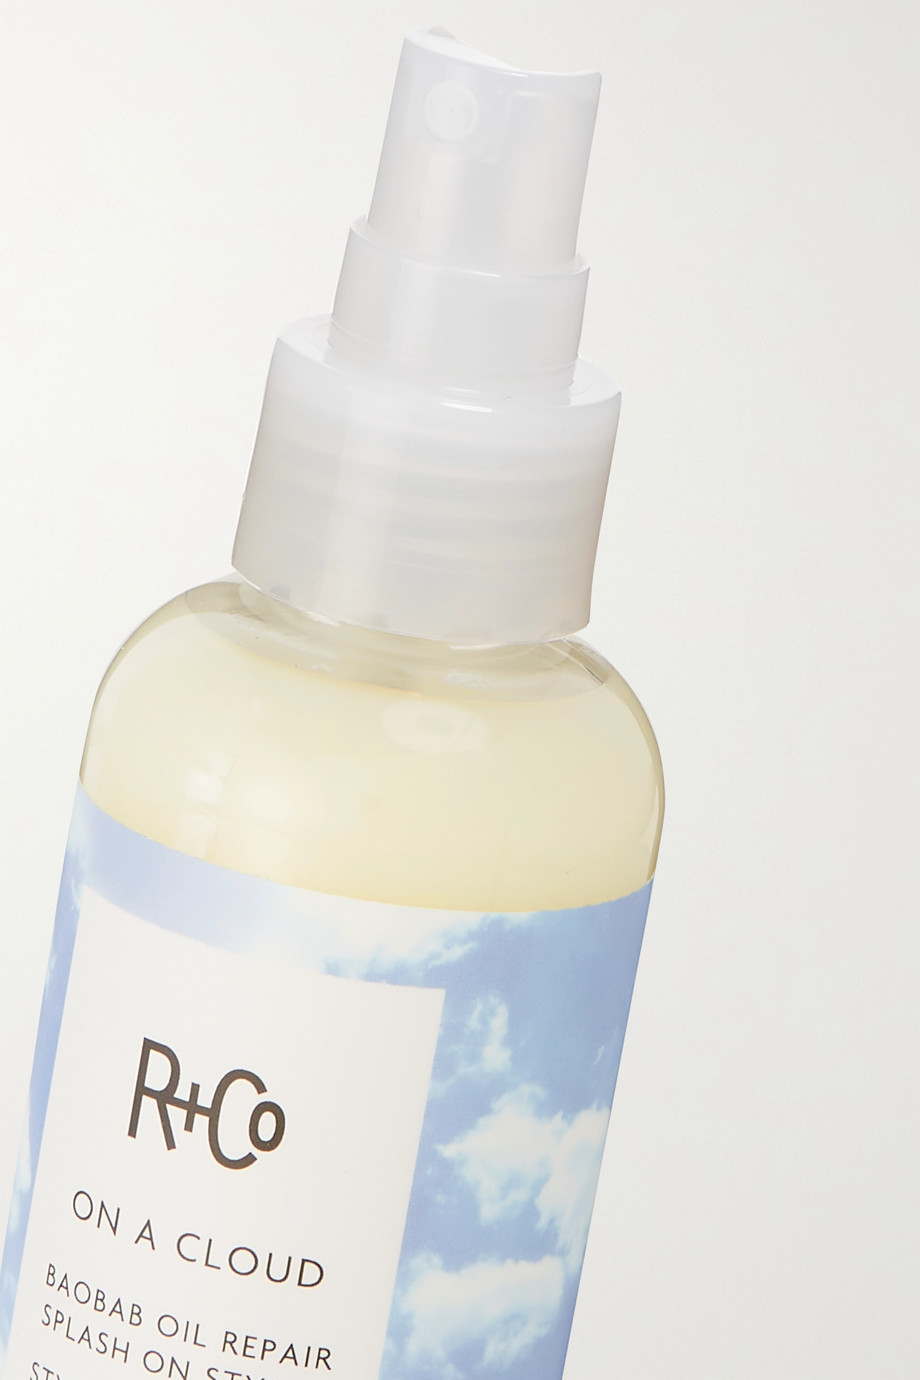 R+CO On a Cloud Baobab Oil Repair Splash-On Styler, 124ml